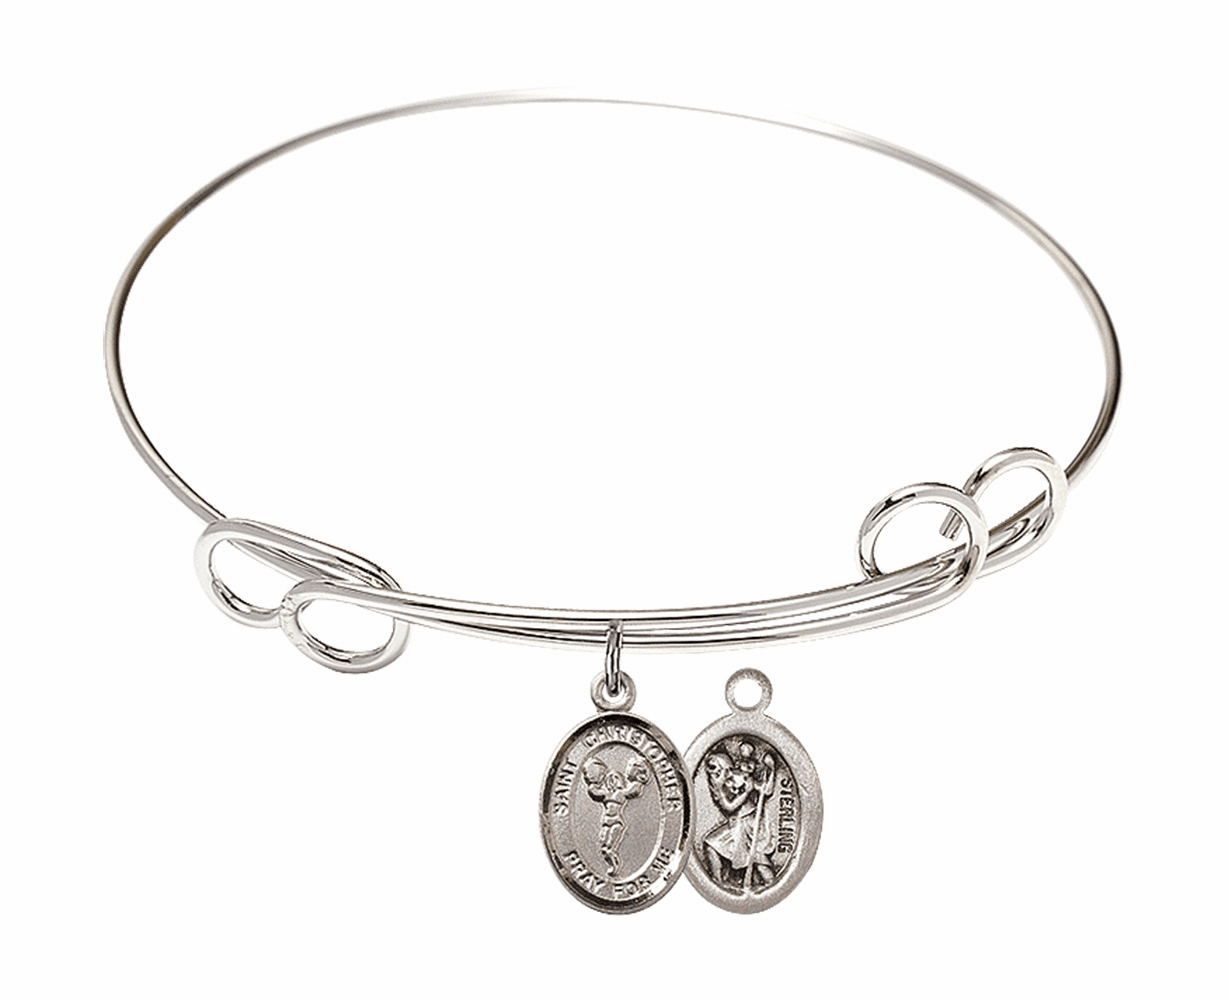 Round Loop St Christopher Cheerleading Bangle Charm Bracelet by Bliss